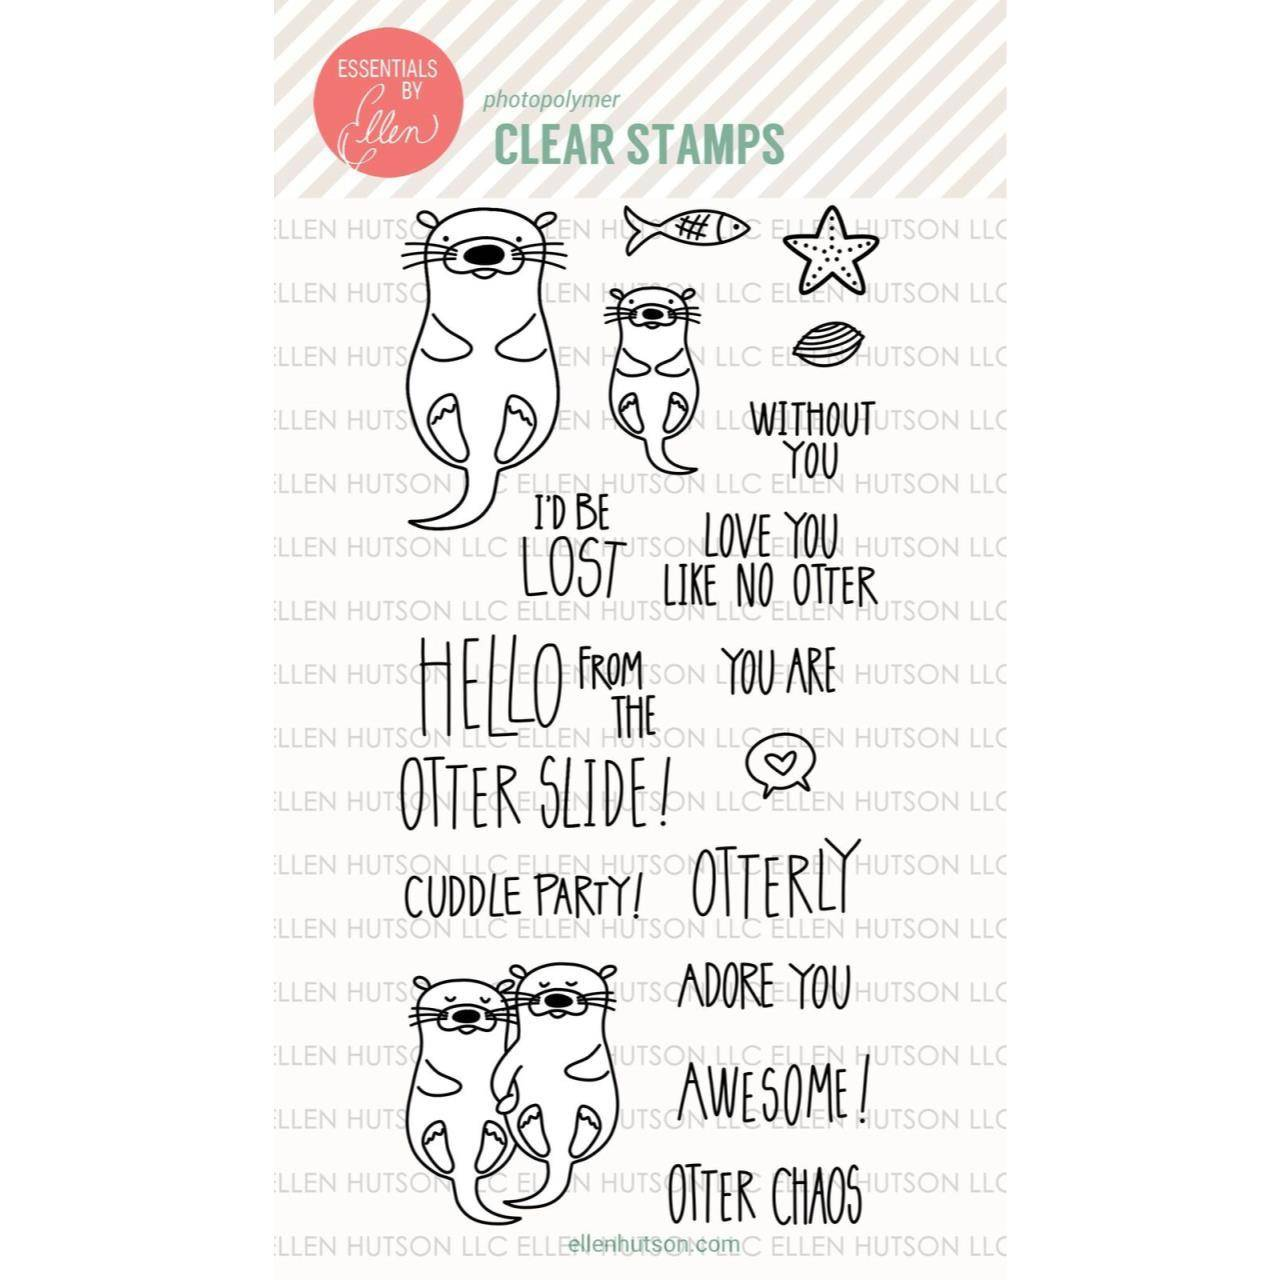 Essentials by Ellen Otterly Awesome stamps